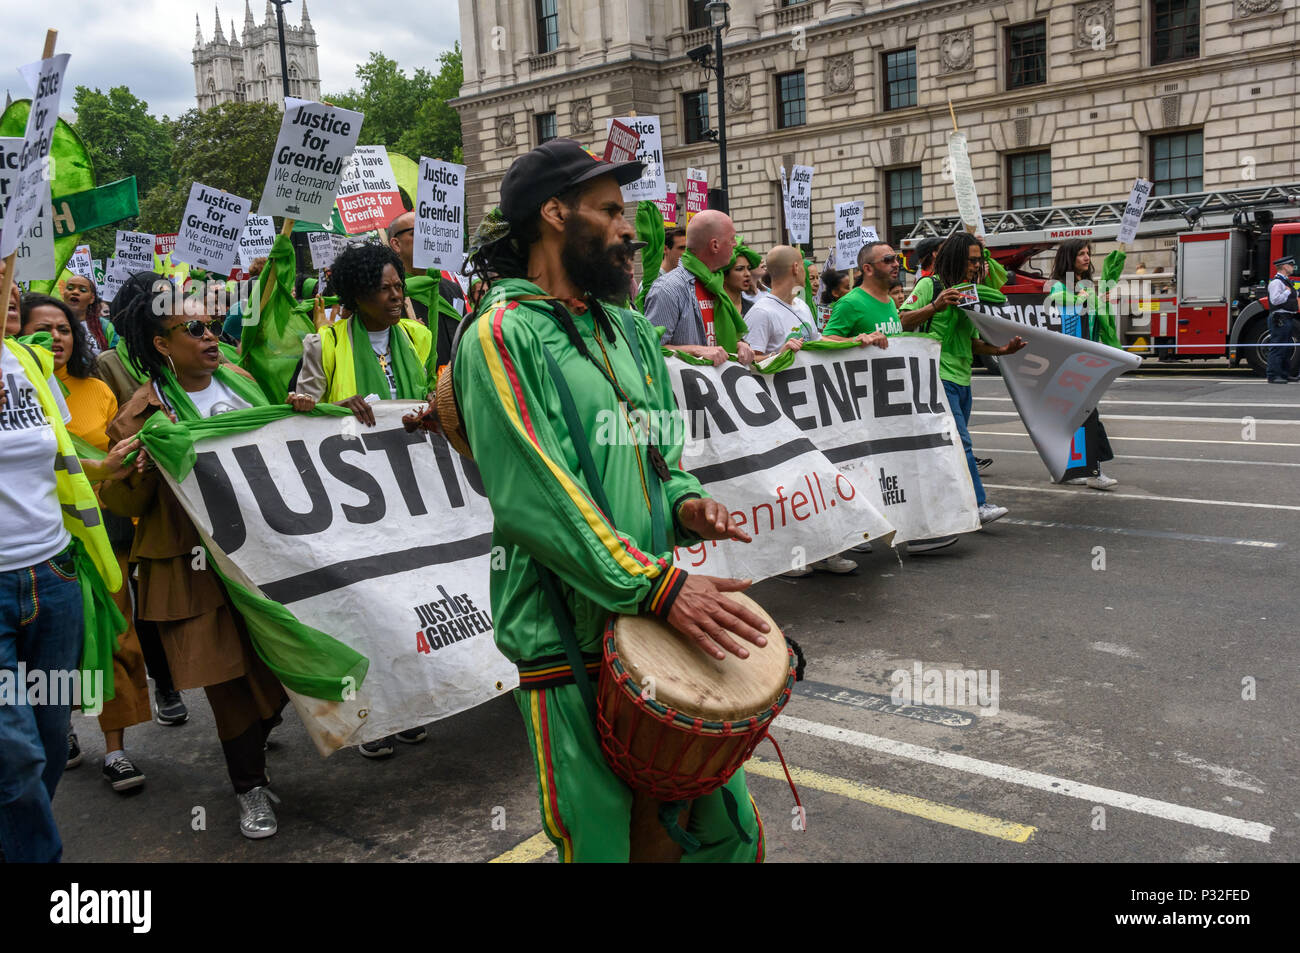 London, UK. 16th June 2018. A large crowd at Downing St shows solidarity with the 72 killed and the survivors of the Grenfell fire a year ago at a protest organised by Justice4Grenfell and the FBU (Fire Brigades Union.) After some speeches they marched to the Home Office for a brief protest before returning to Downing St for more speeches. mmodation. 300 tower blocks a Credit: Peter Marshall/Alamy Live News - Stock Image